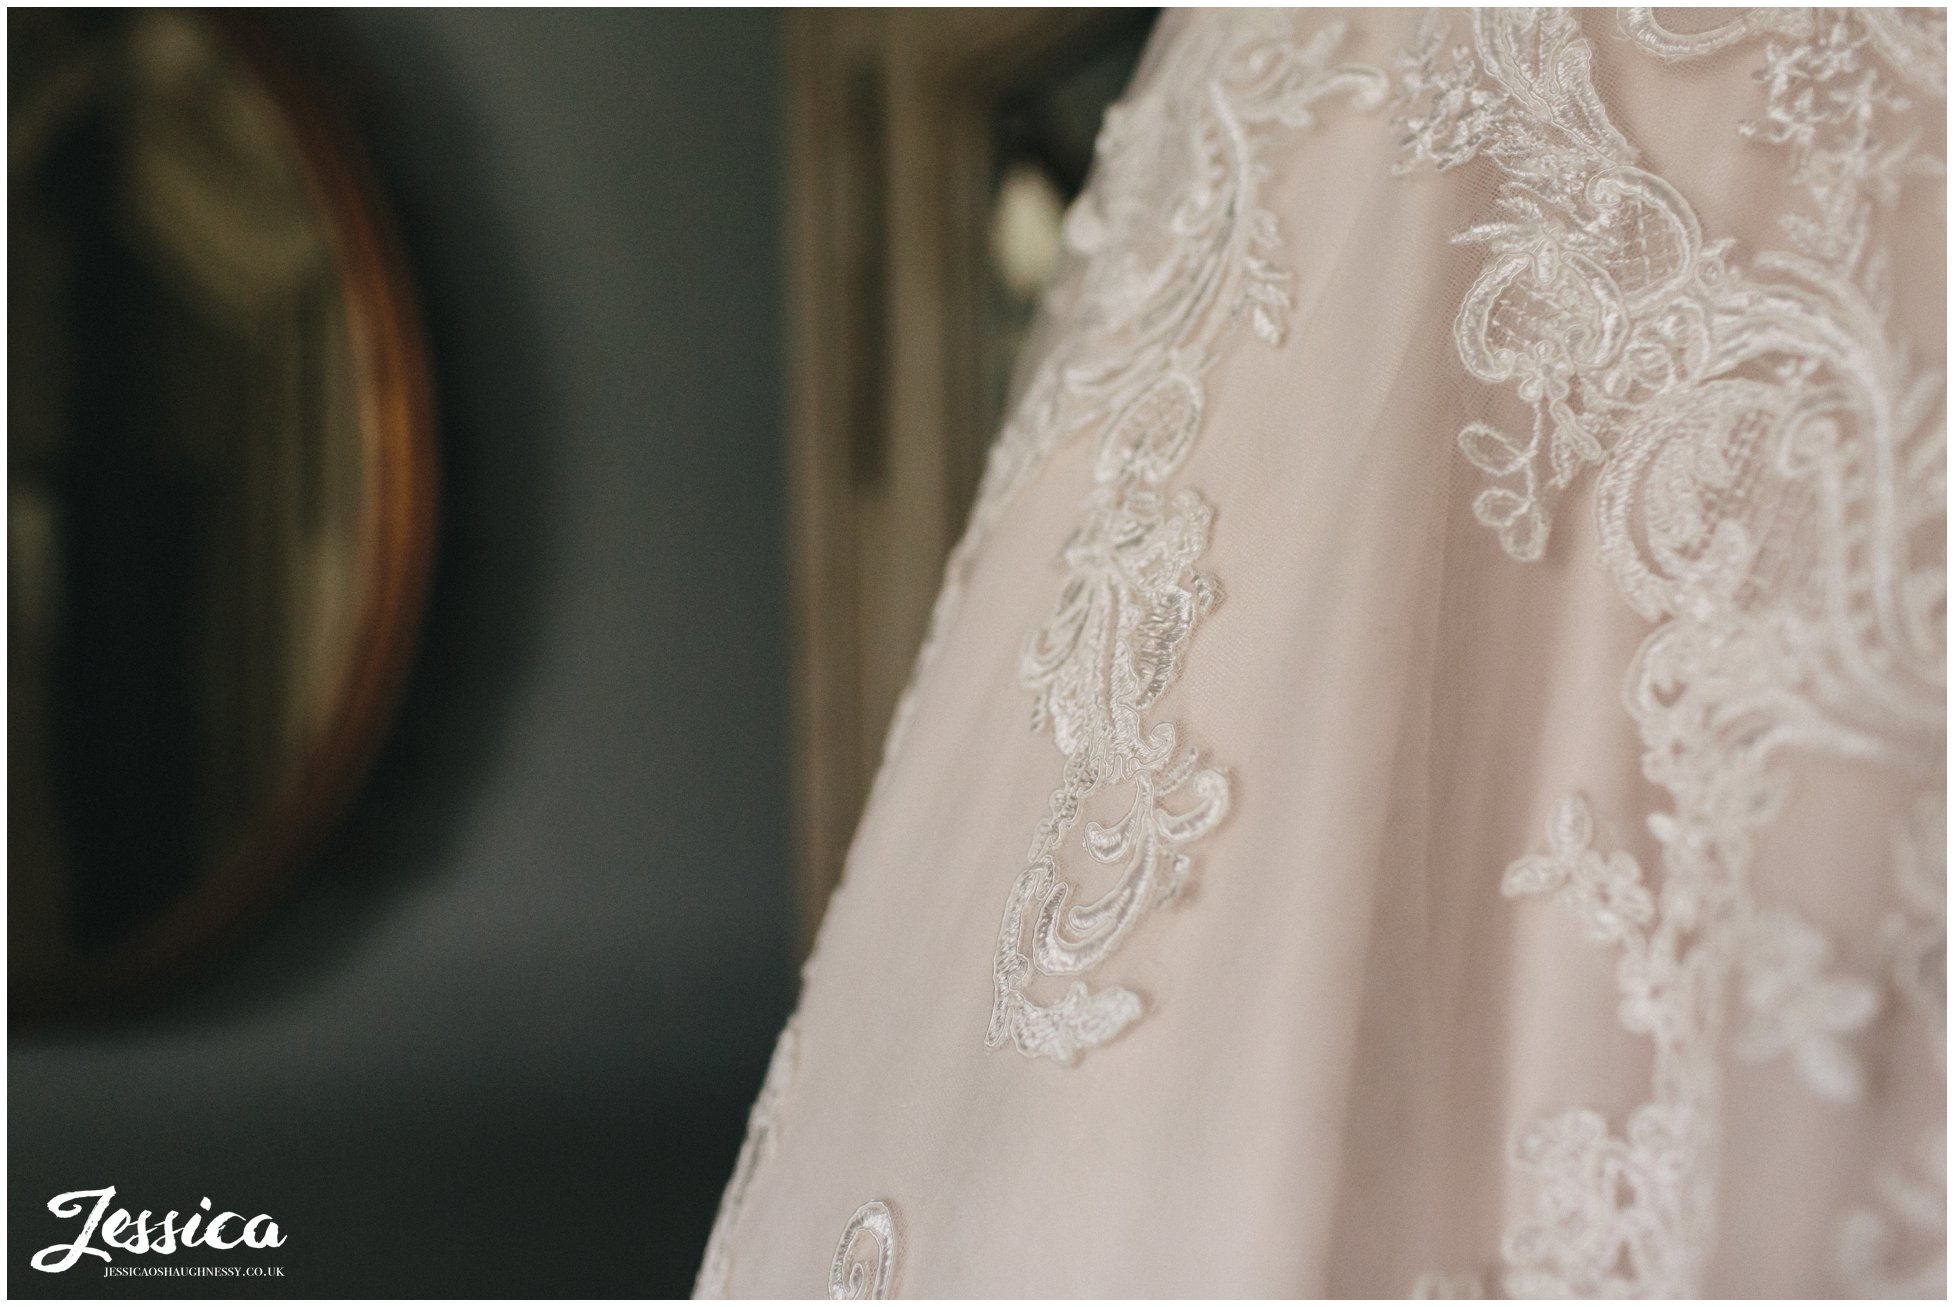 close up of lace detail on wedding dress